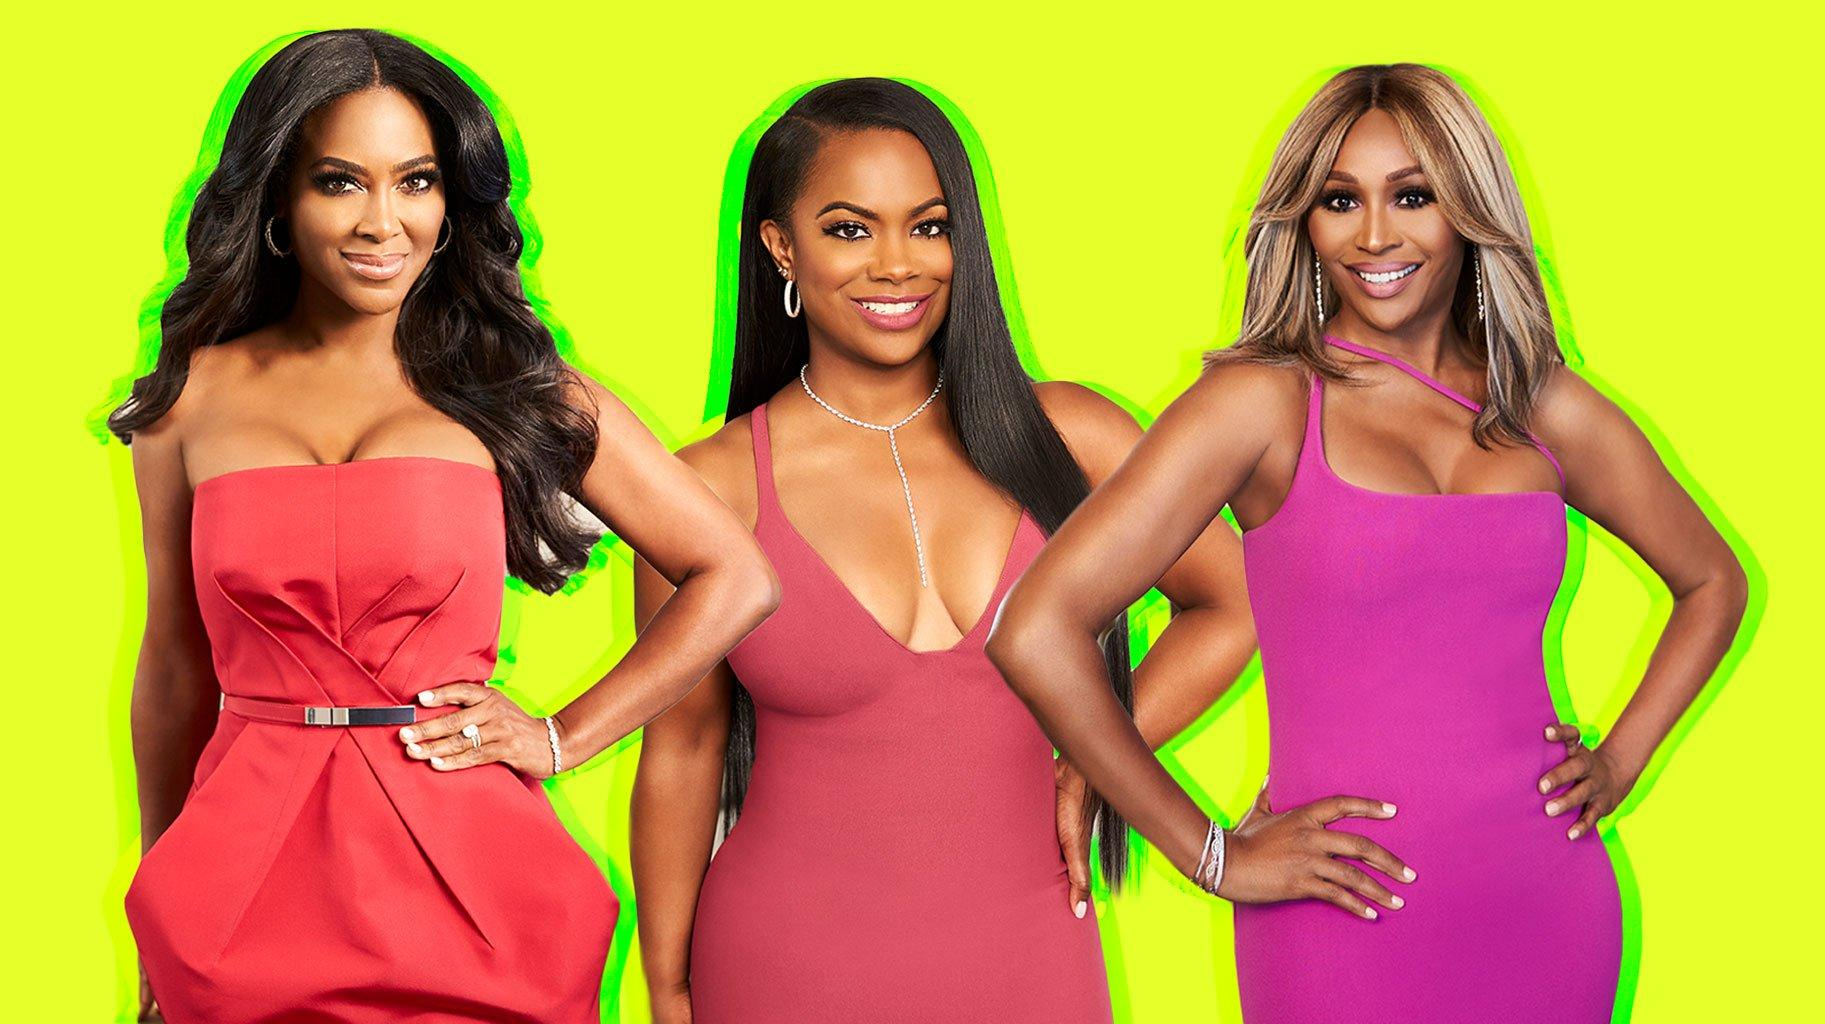 Kenya Moore Poses With Kandi Burruss And Cynthia Bailey And Fans Call Them Boss Ladies